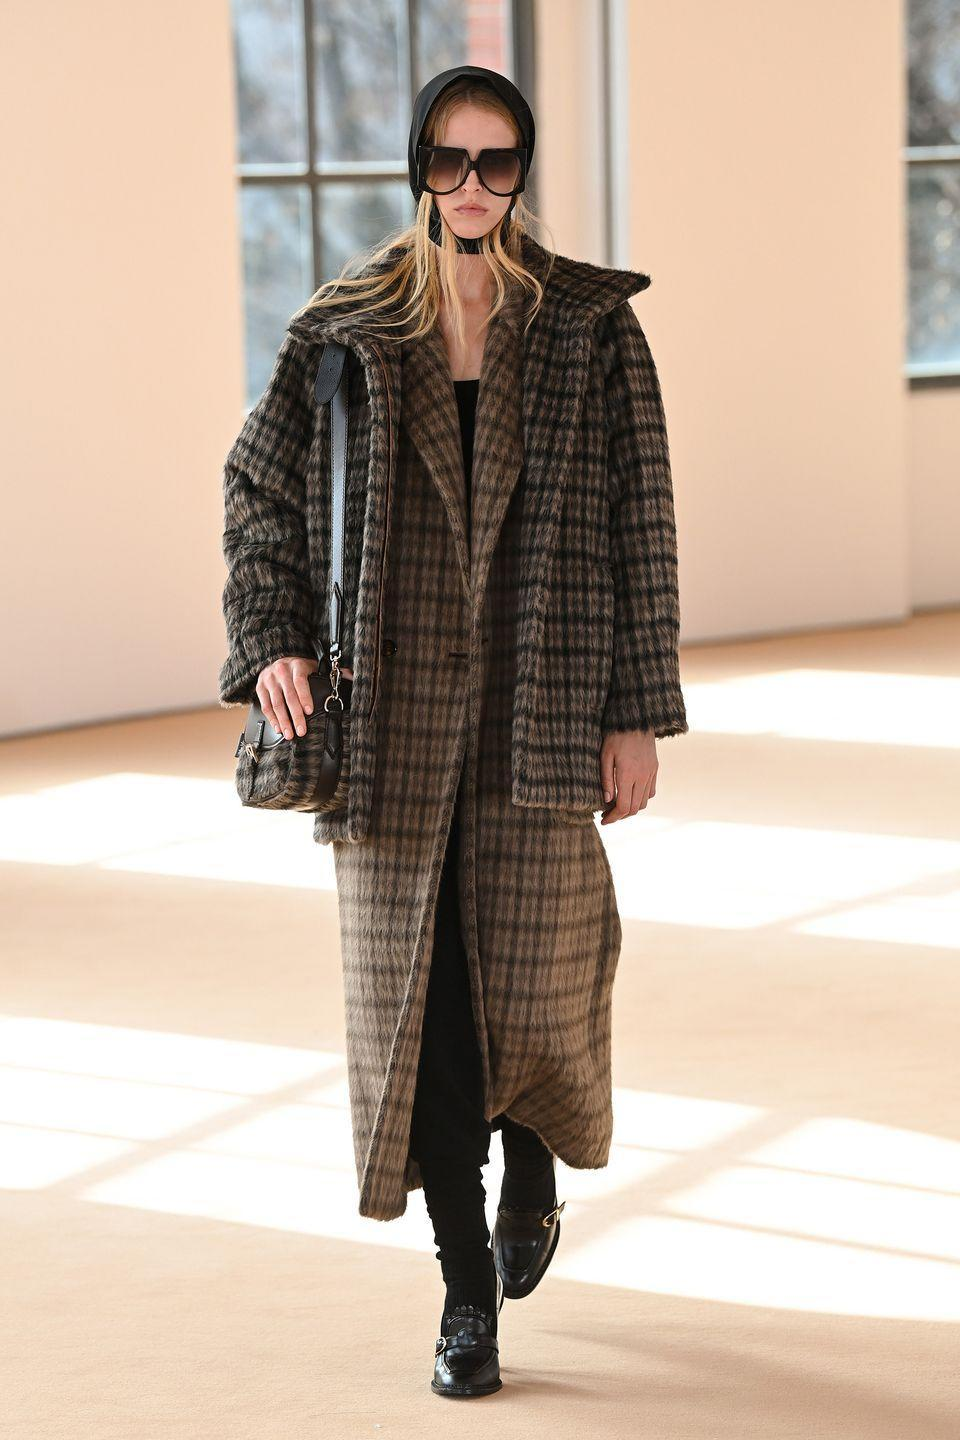 <p>English mainstays meet a chic Italiana woman for Max Mara's Fall collection. Think: tartans and cashmere, headscarves and Fair Isle knits. Who doesn't want to be her? The creator of the famed teddy coat (they're in here too, don't worry) is celebrating 70 years since Achille Maramotti founded the storied brand as a shopping destination for the wives of local notaries and doctors. Luckily, now the ladies who frequent Max Mara's boutiques are the professionals themselves—all the better for investing in all those camel coats. <em>-Kerry Pieri</em></p>